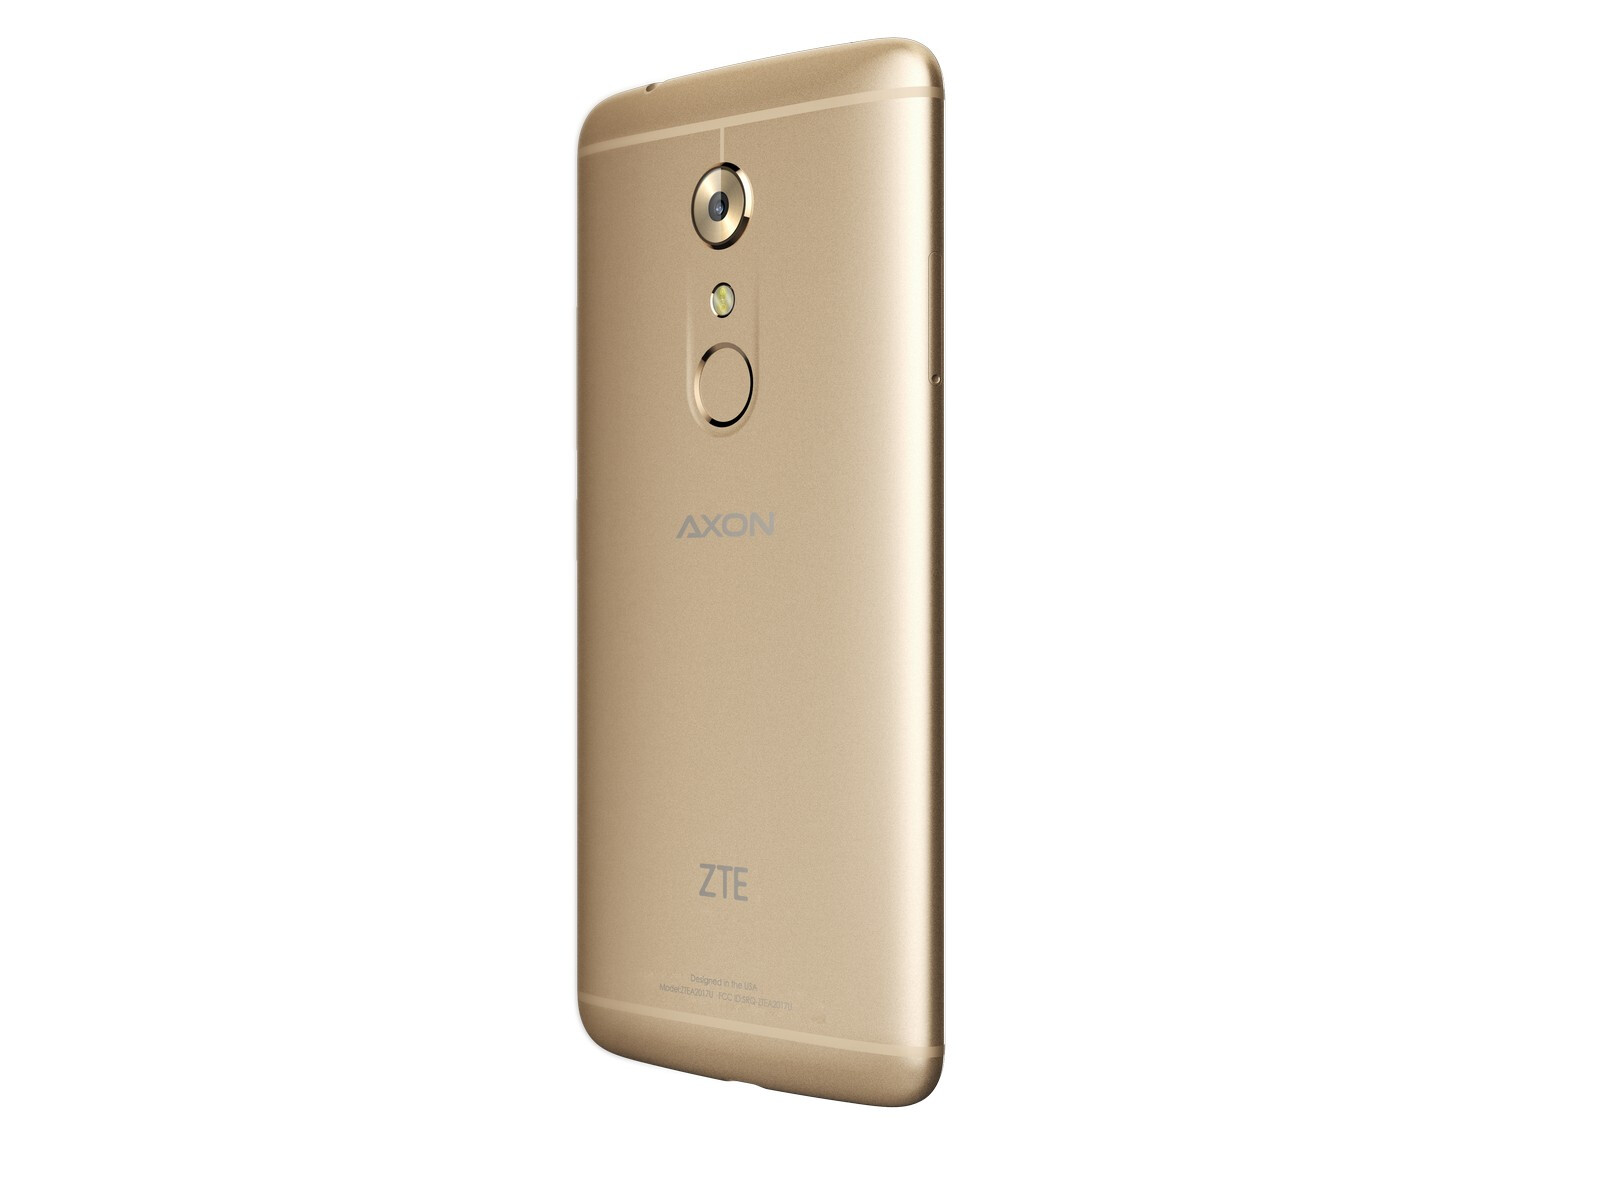 Android 7 0 Nougat update lands for the ZTE Axon 7, makes Daydream